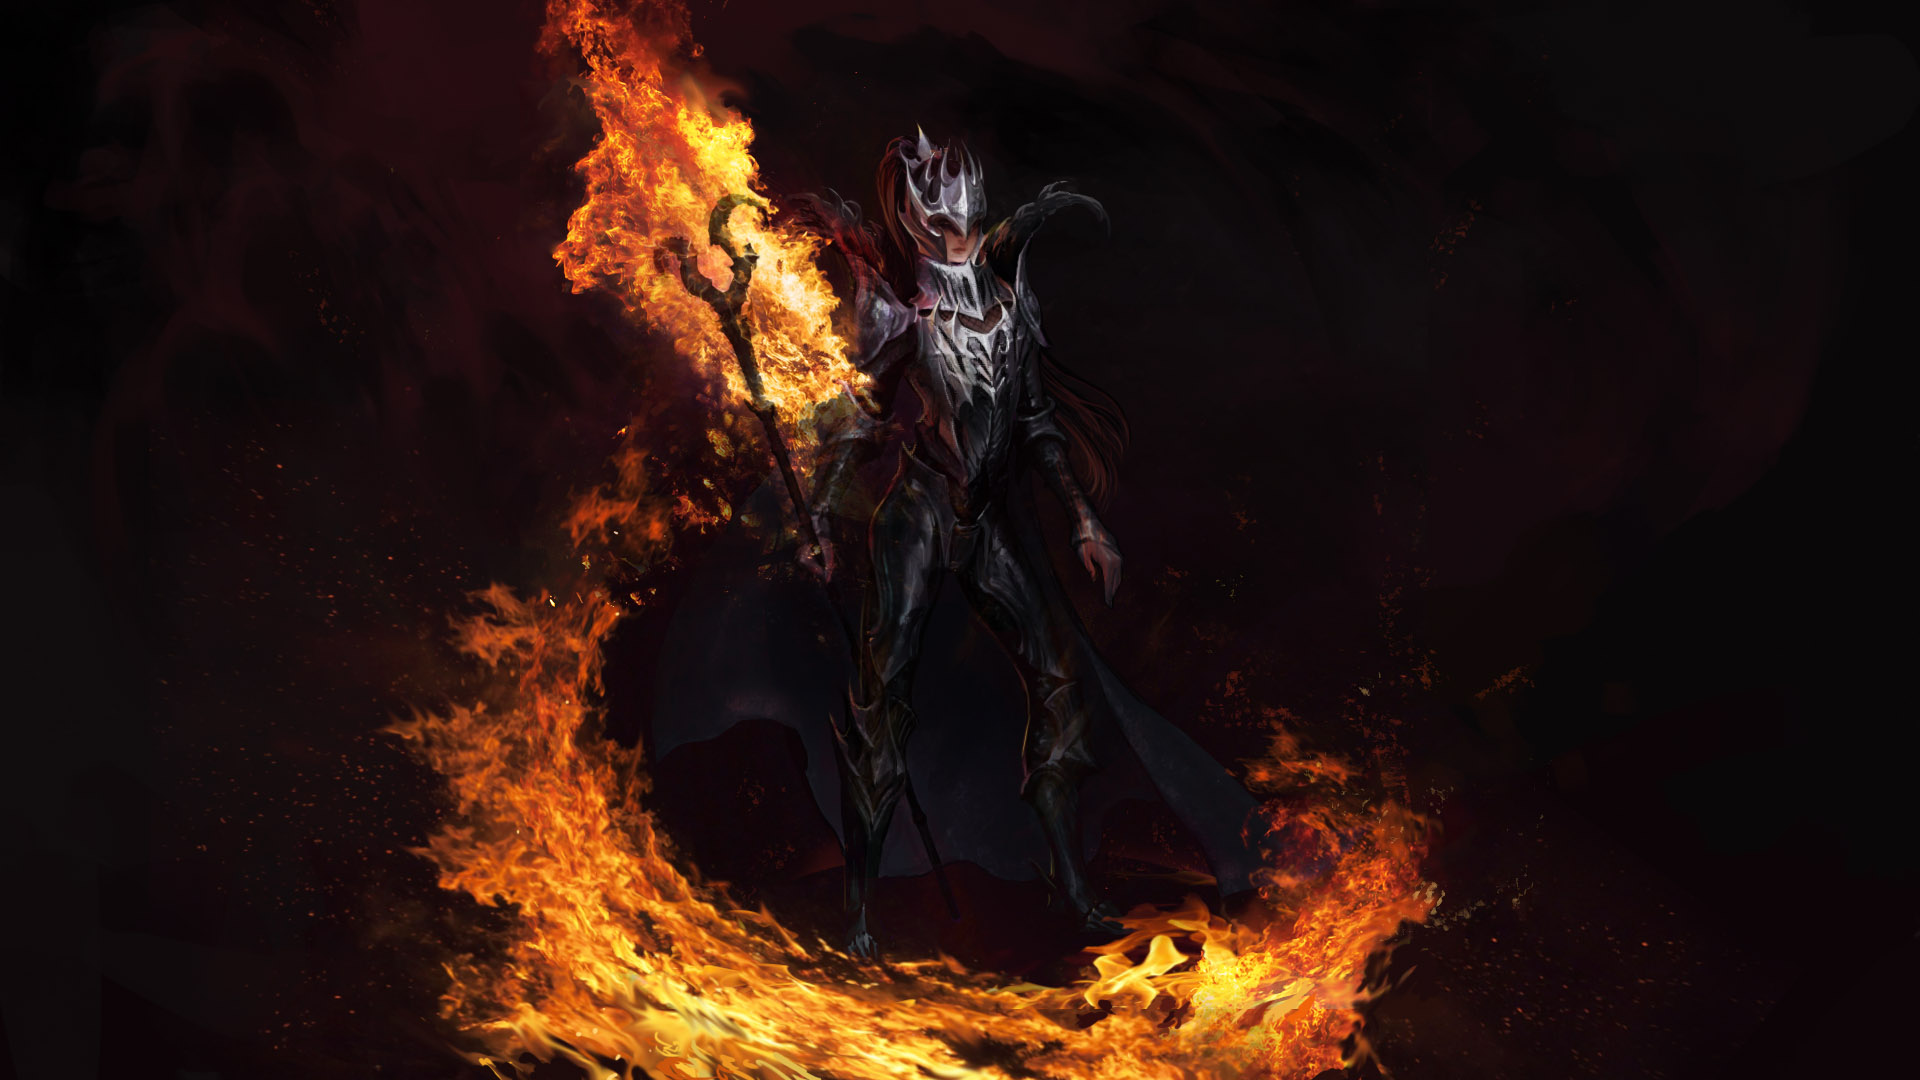 Path Of Exile Wallpaper: Path Of Exile - Doedre Darktongue